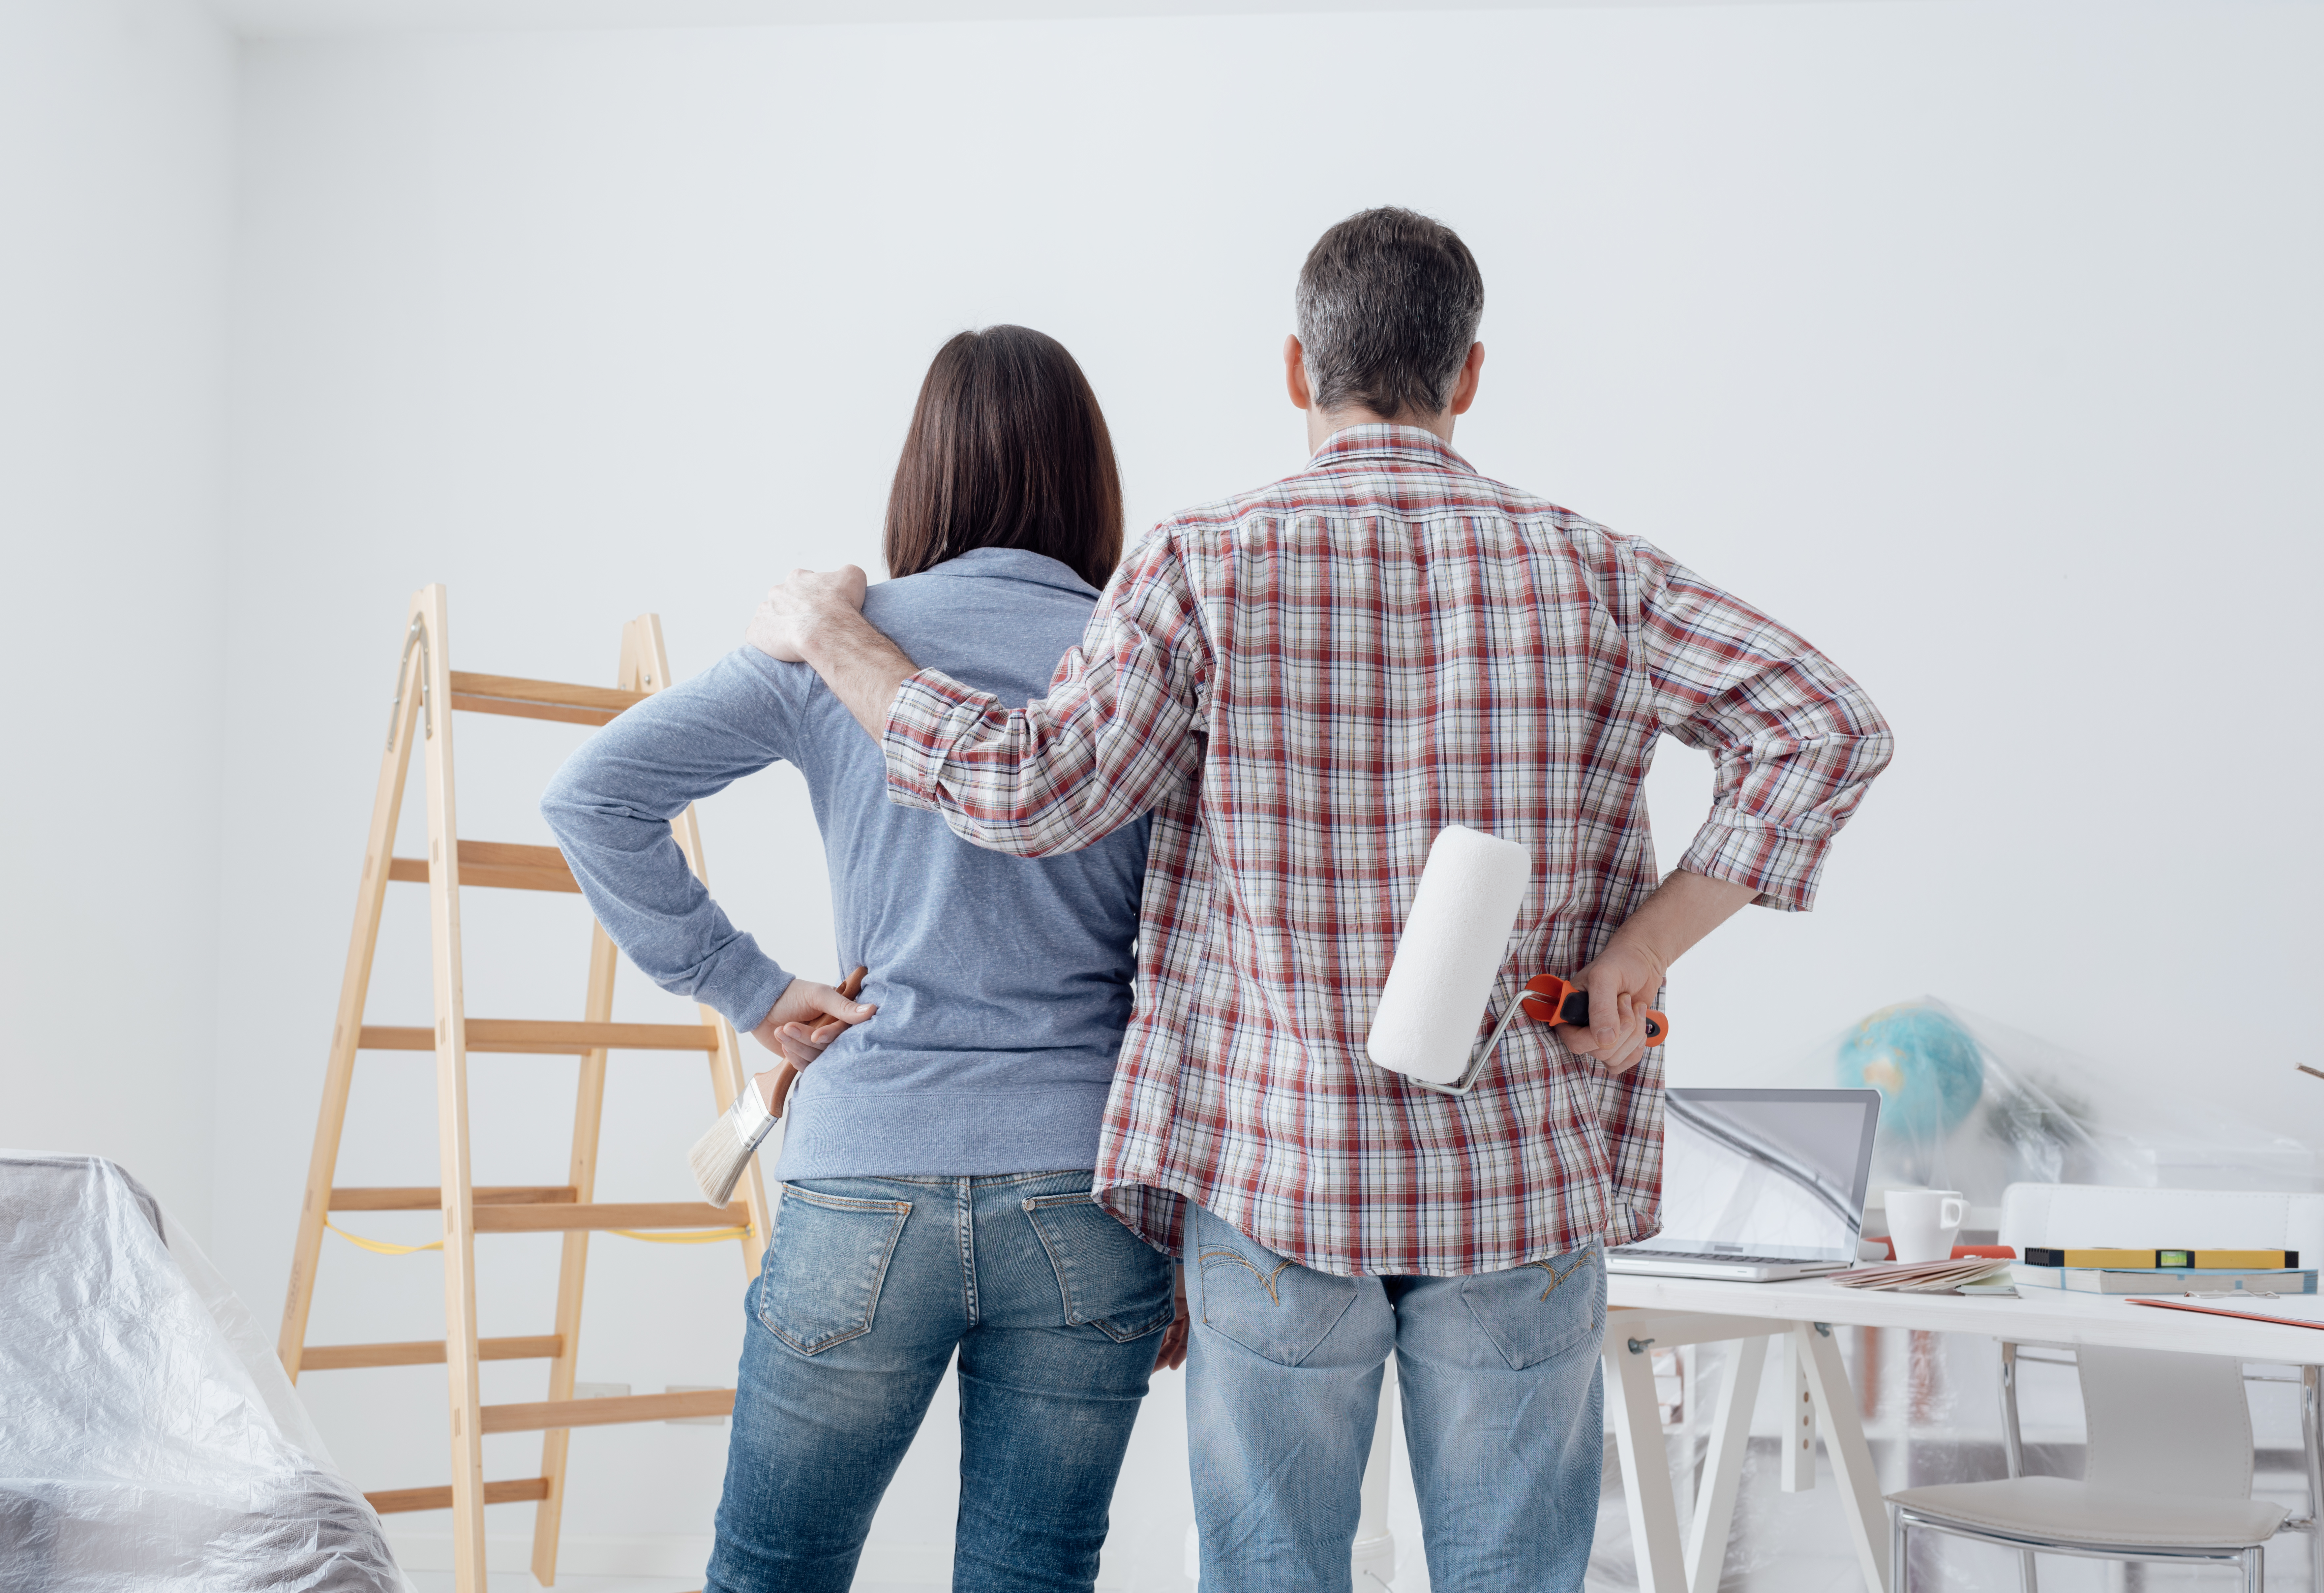 couple staring at their freshly painted room, back view: home renovation